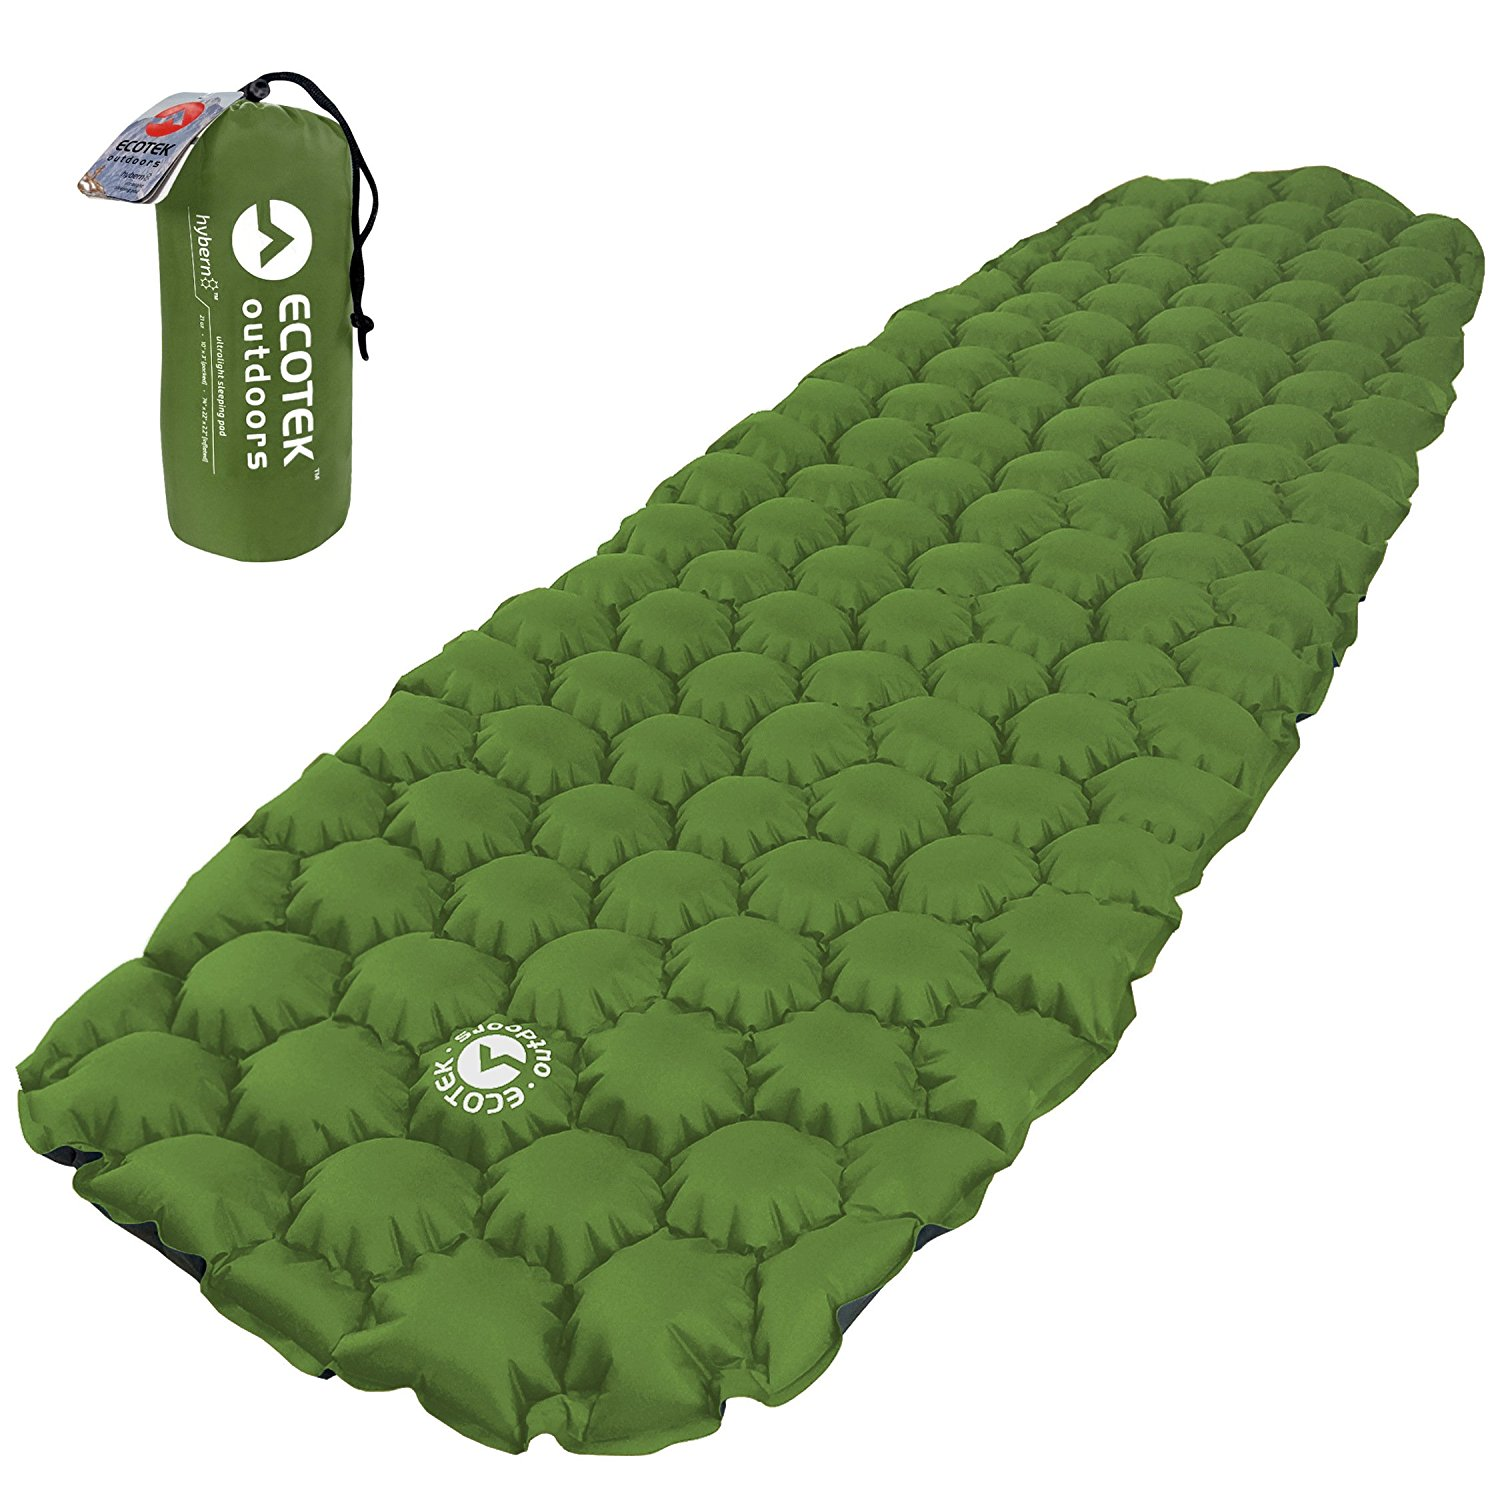 Affordable camping essentials for families: Self-inflating sleeping pads from EcoTek